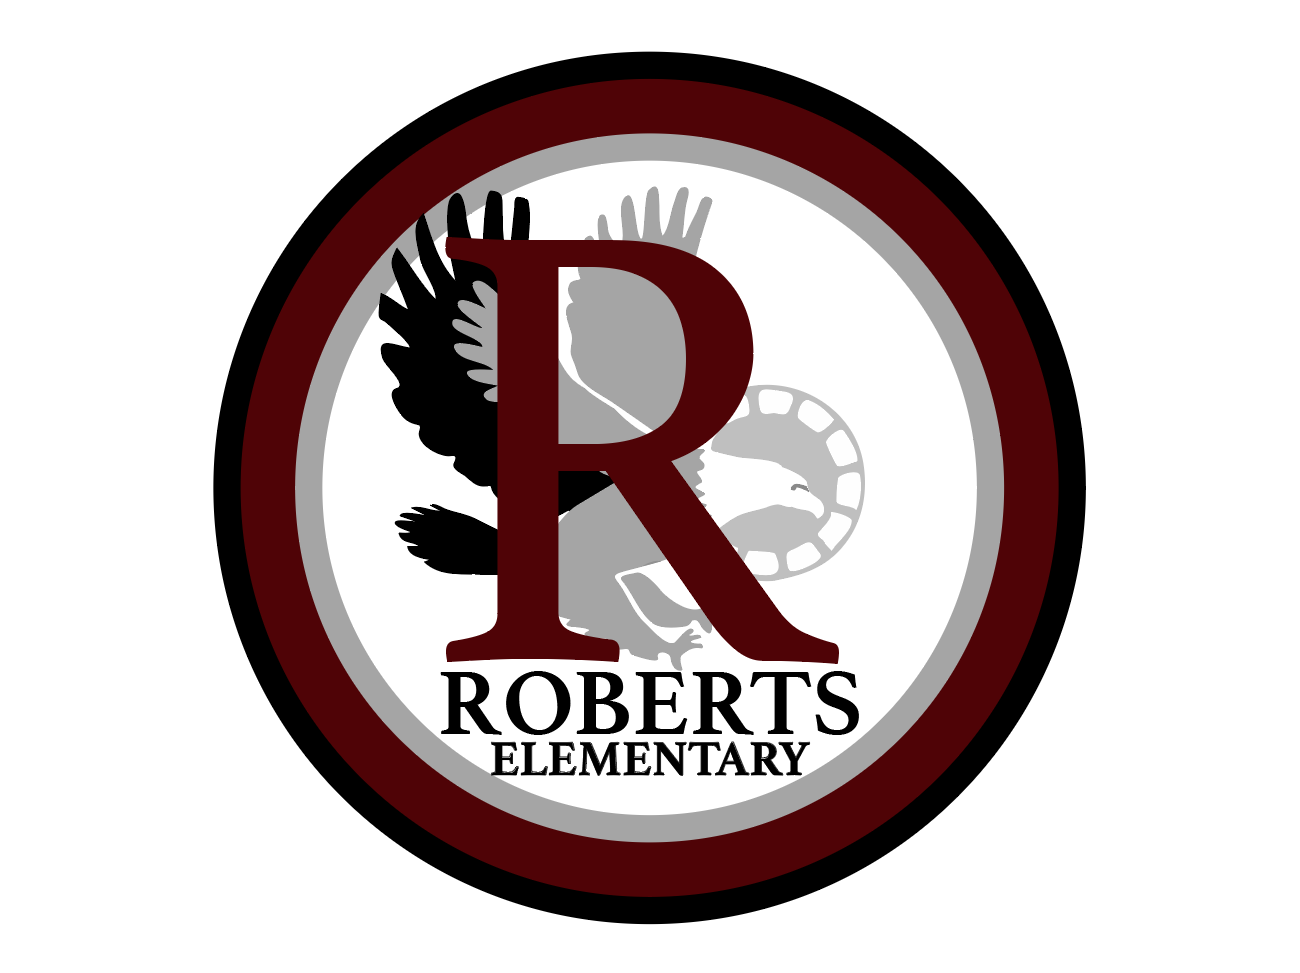 Roberts logo with eagle